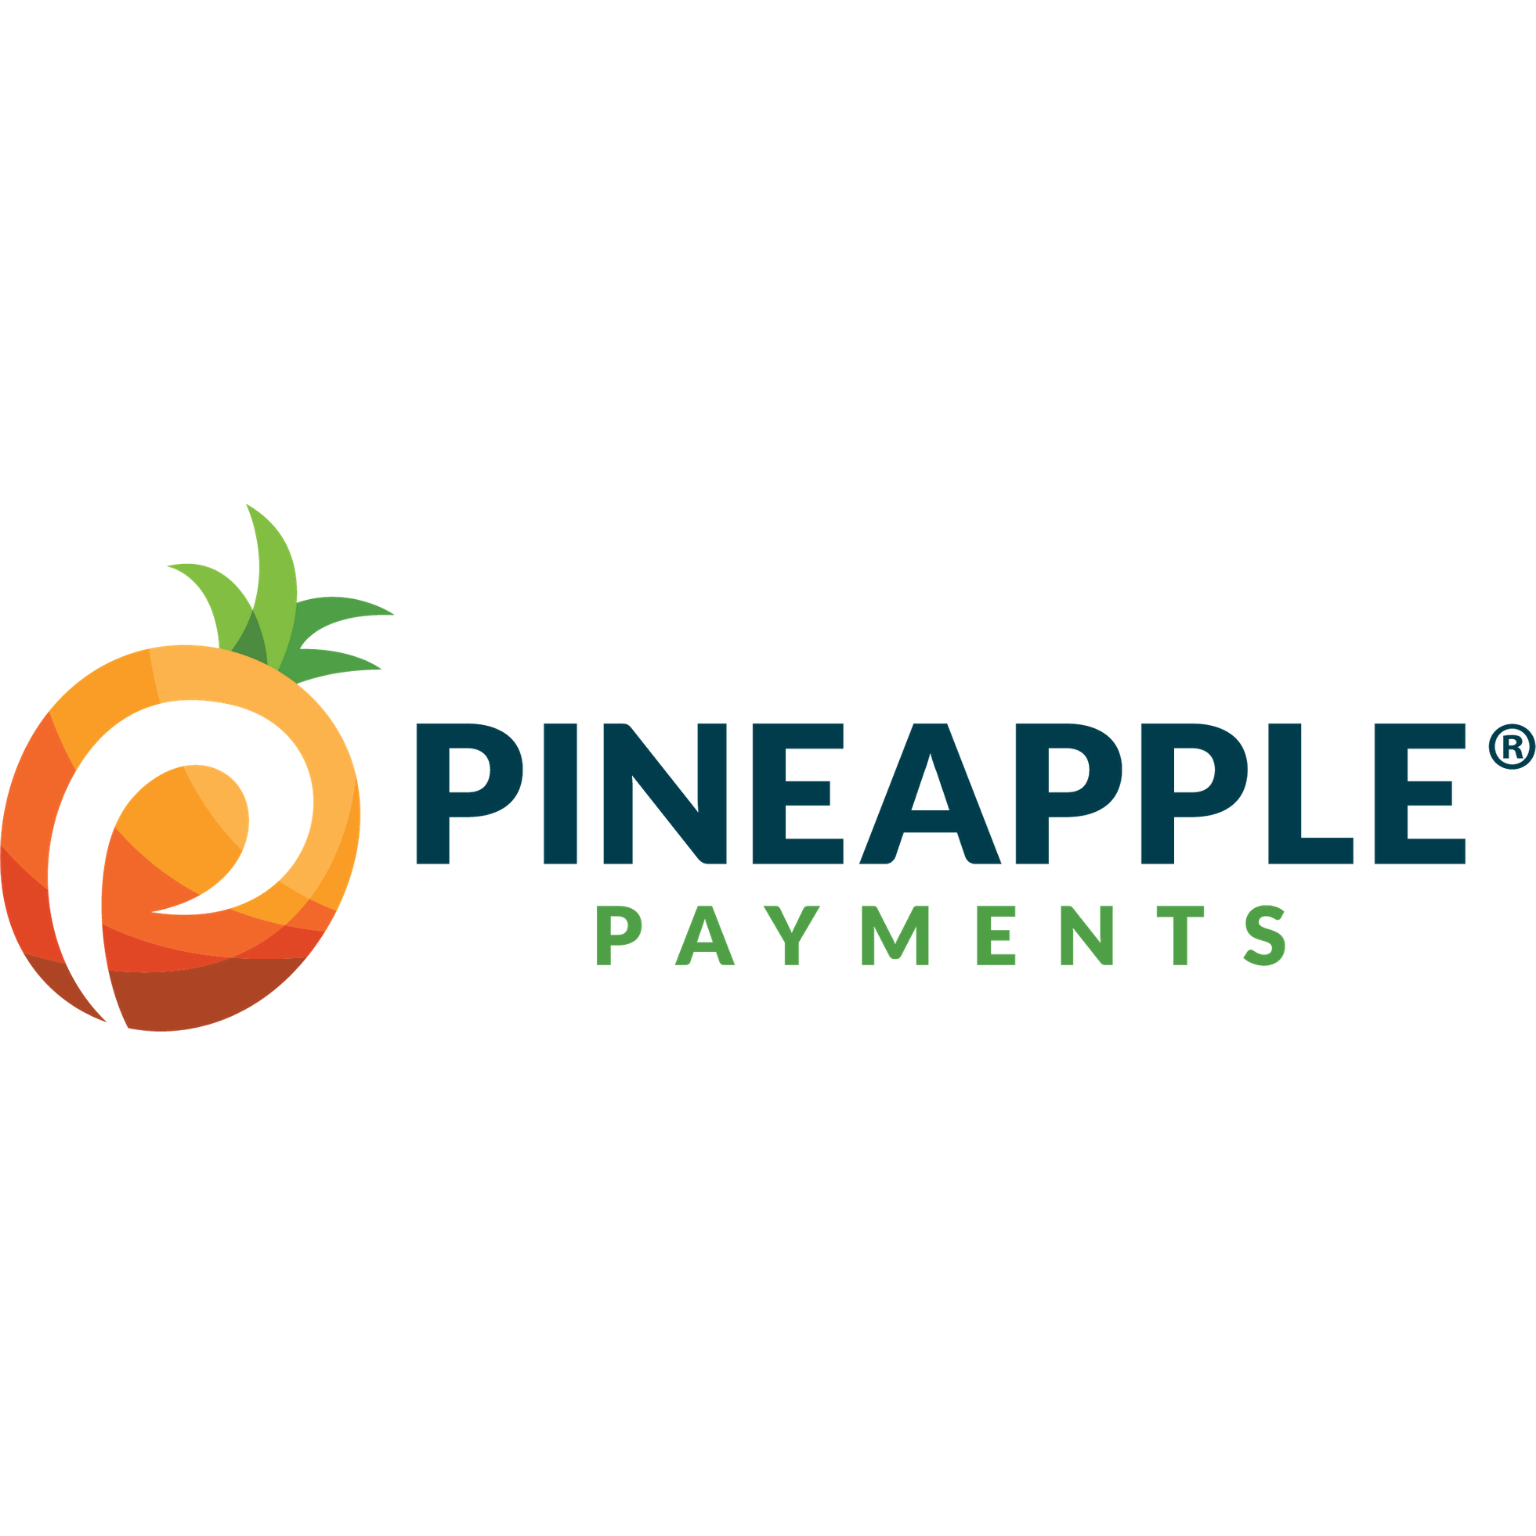 Pineapple Payments